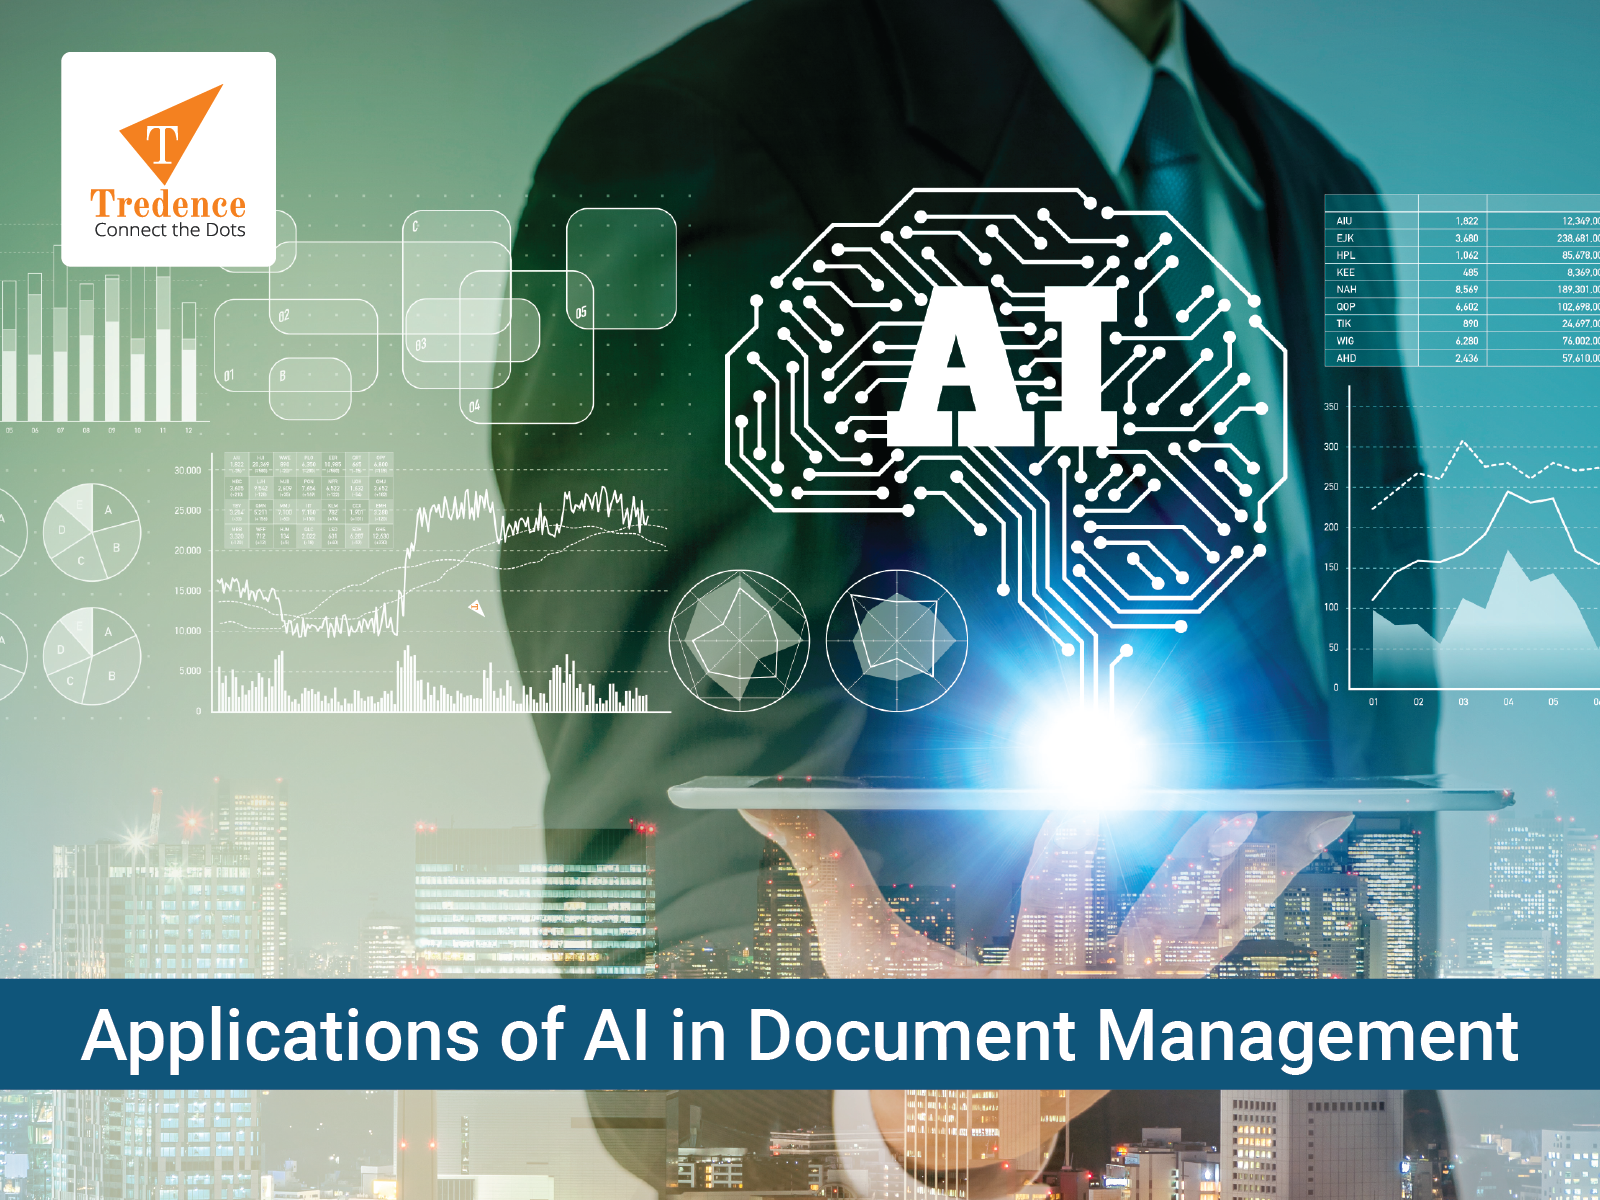 AI in document management